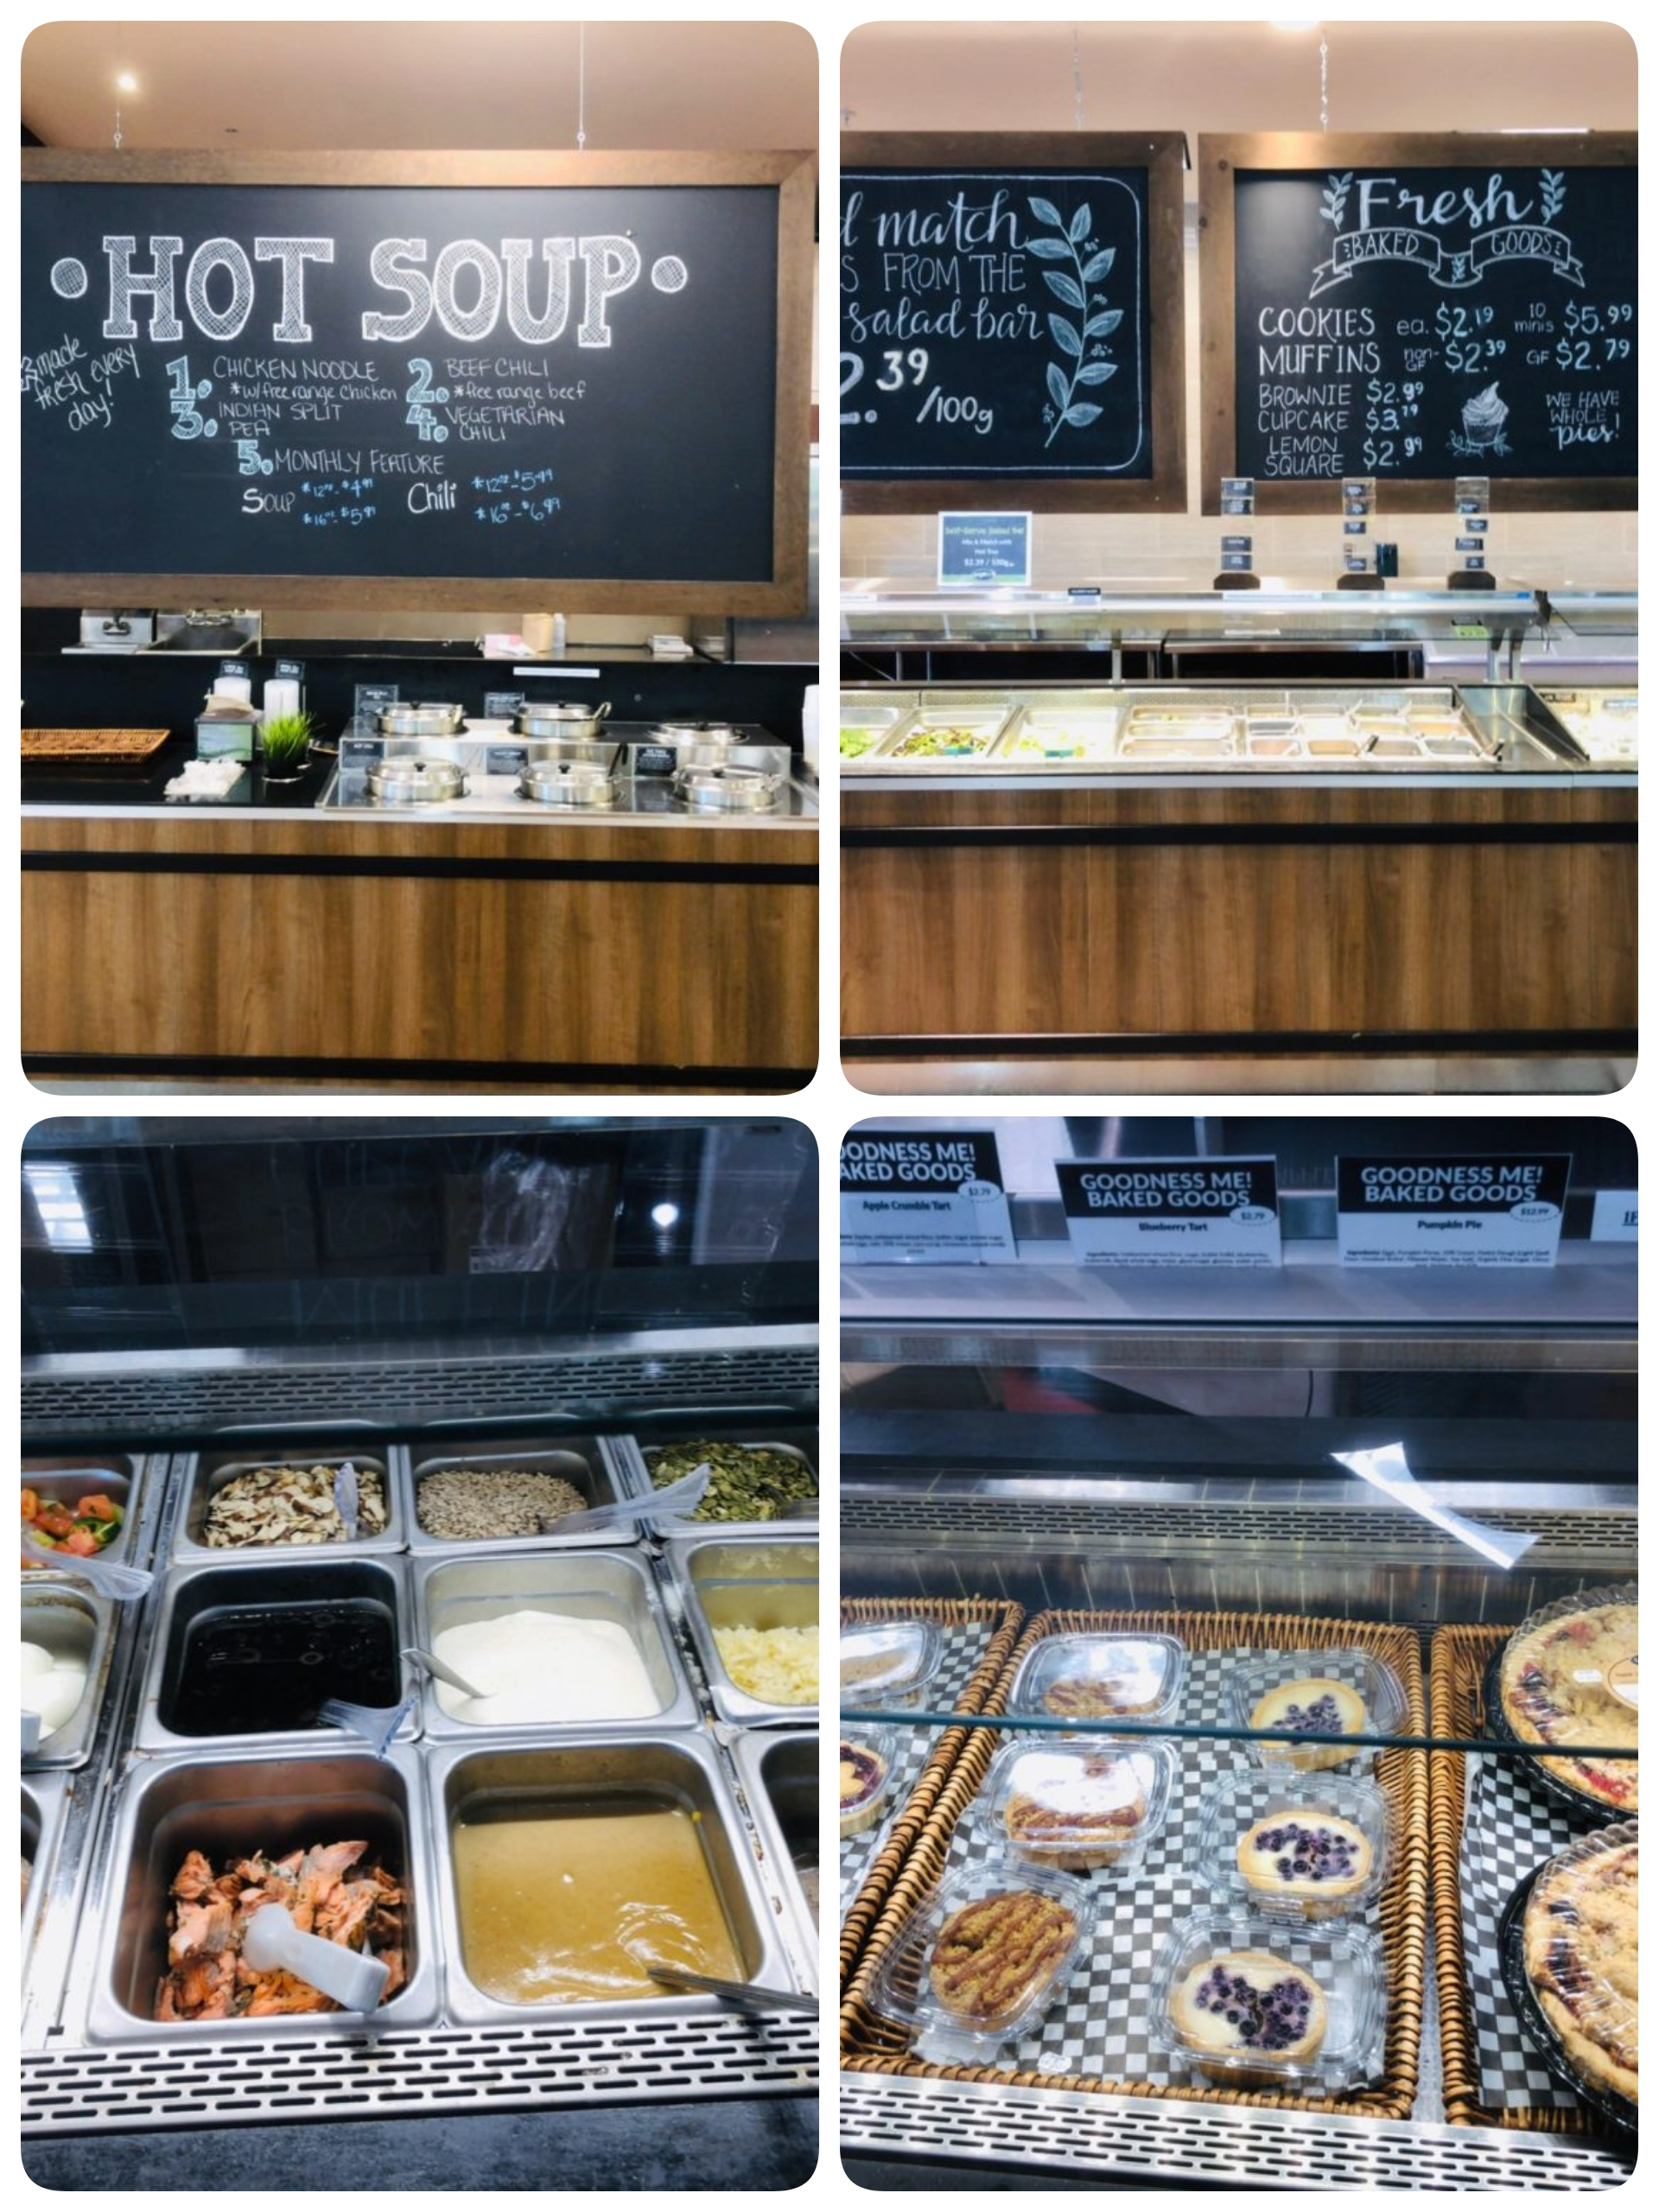 Soups ,salad bar and pizza etc